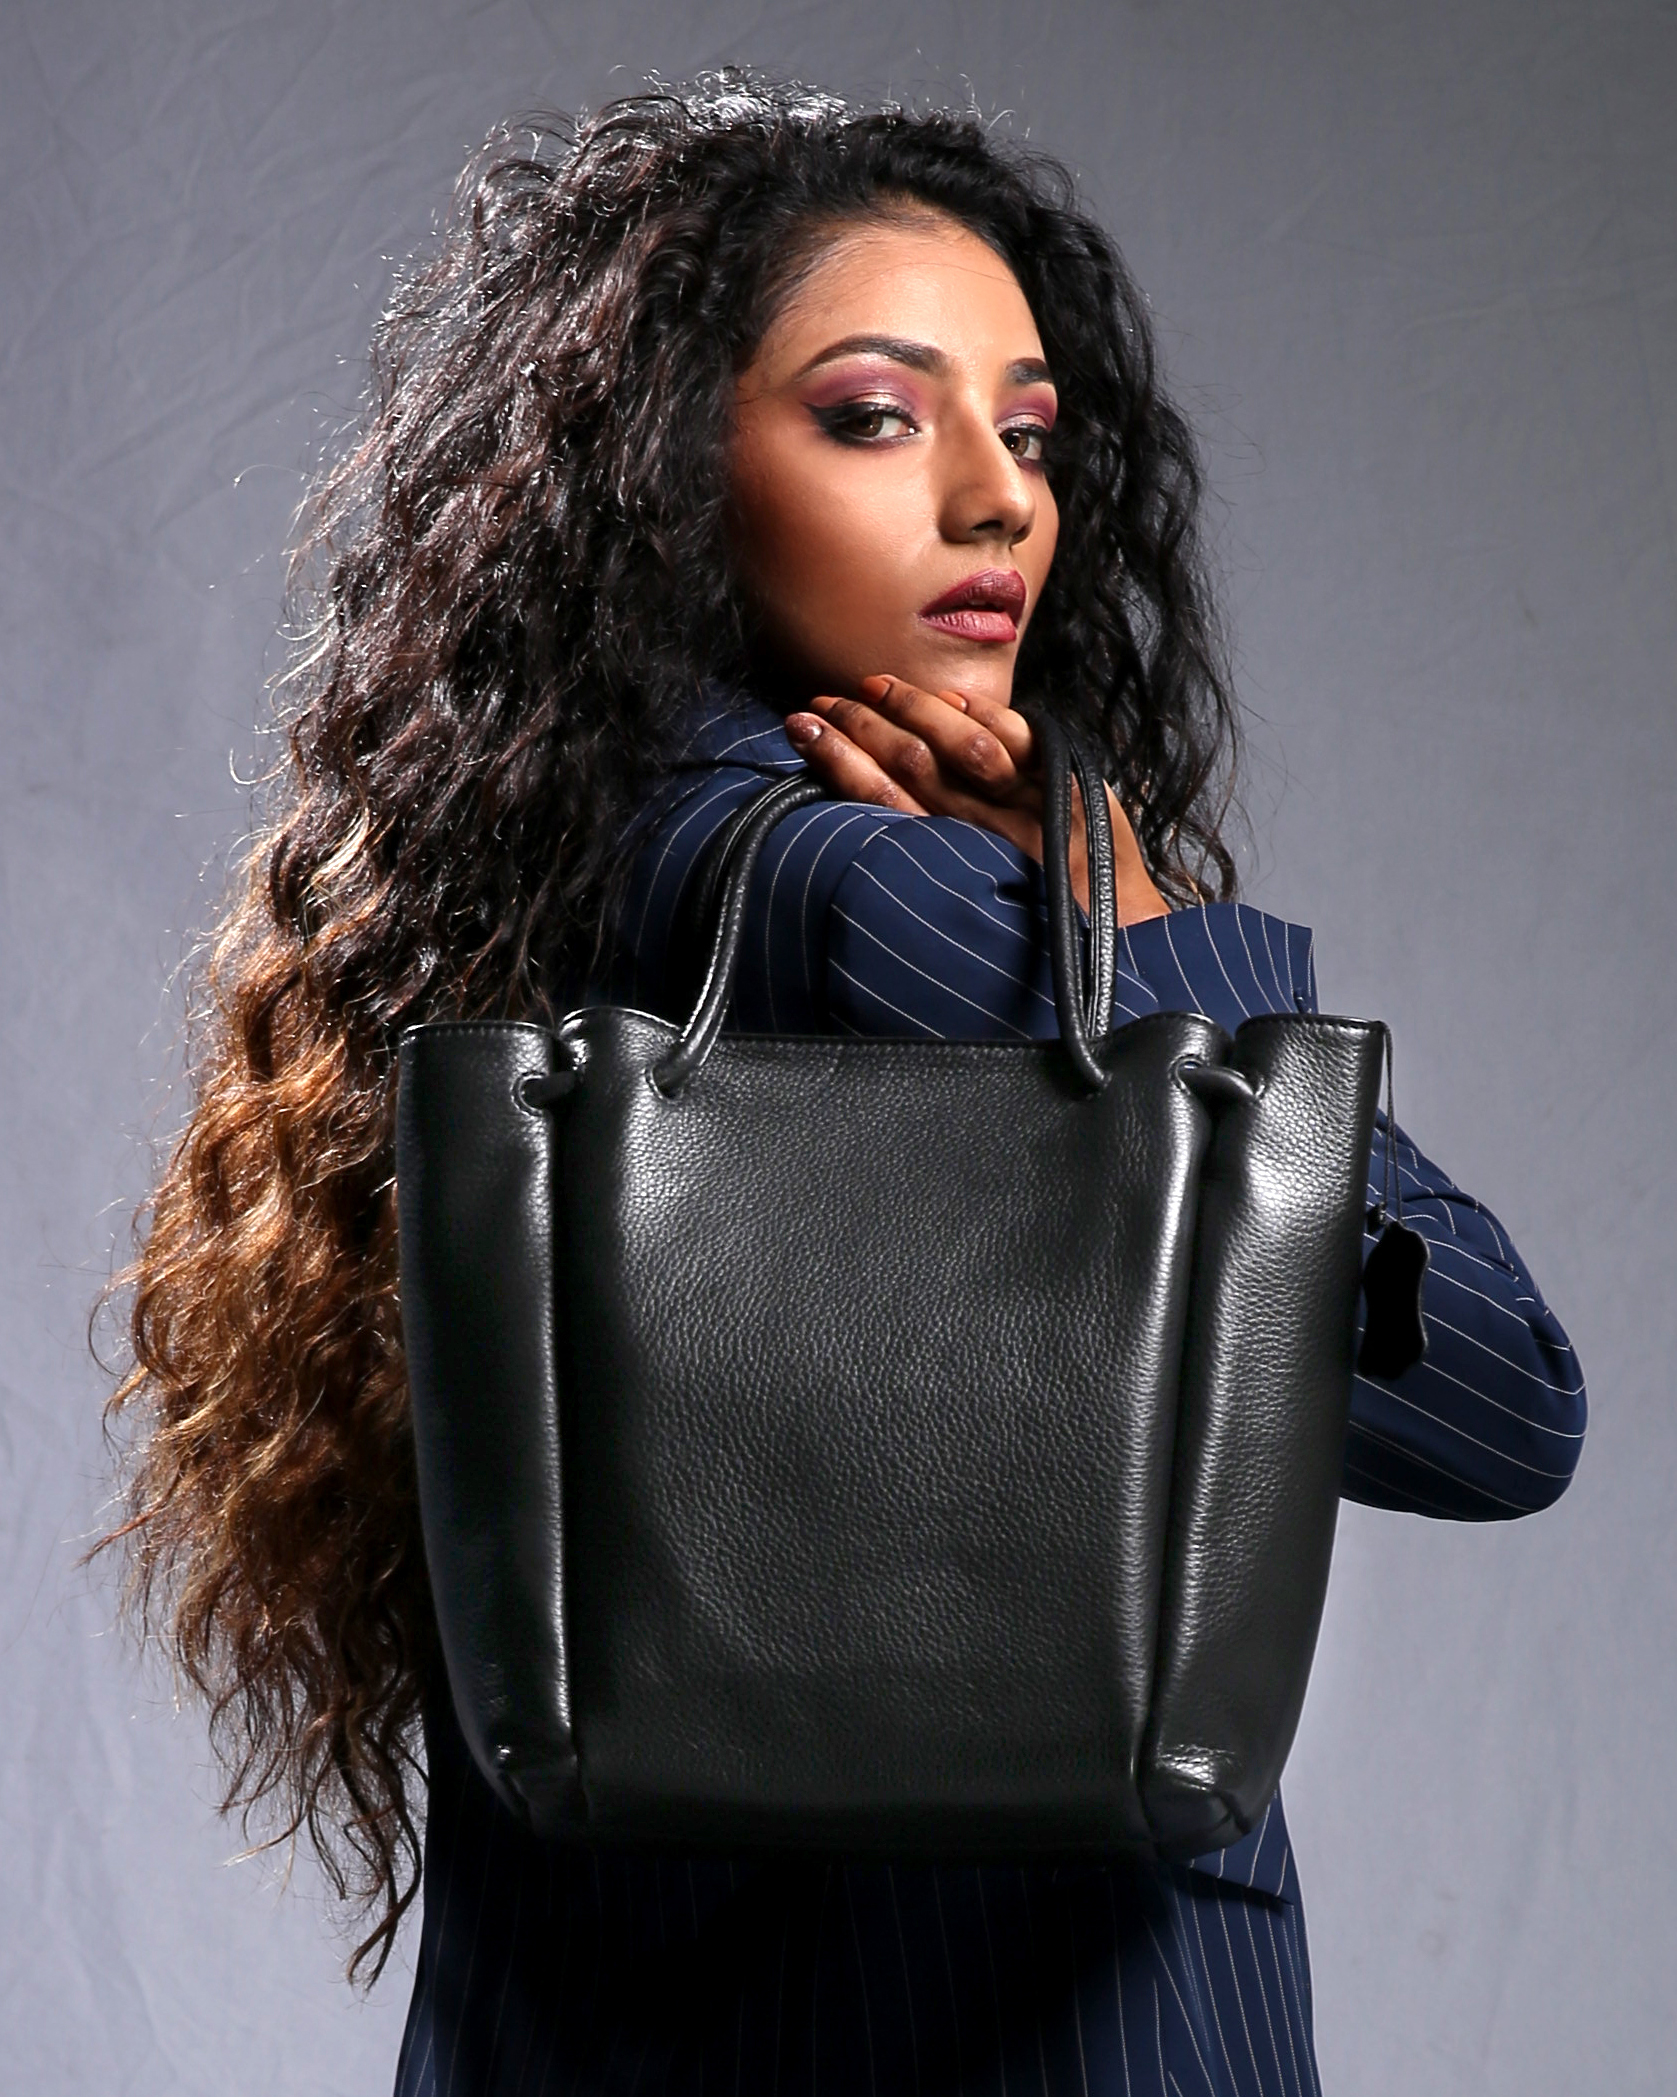 Model with Tote Bag